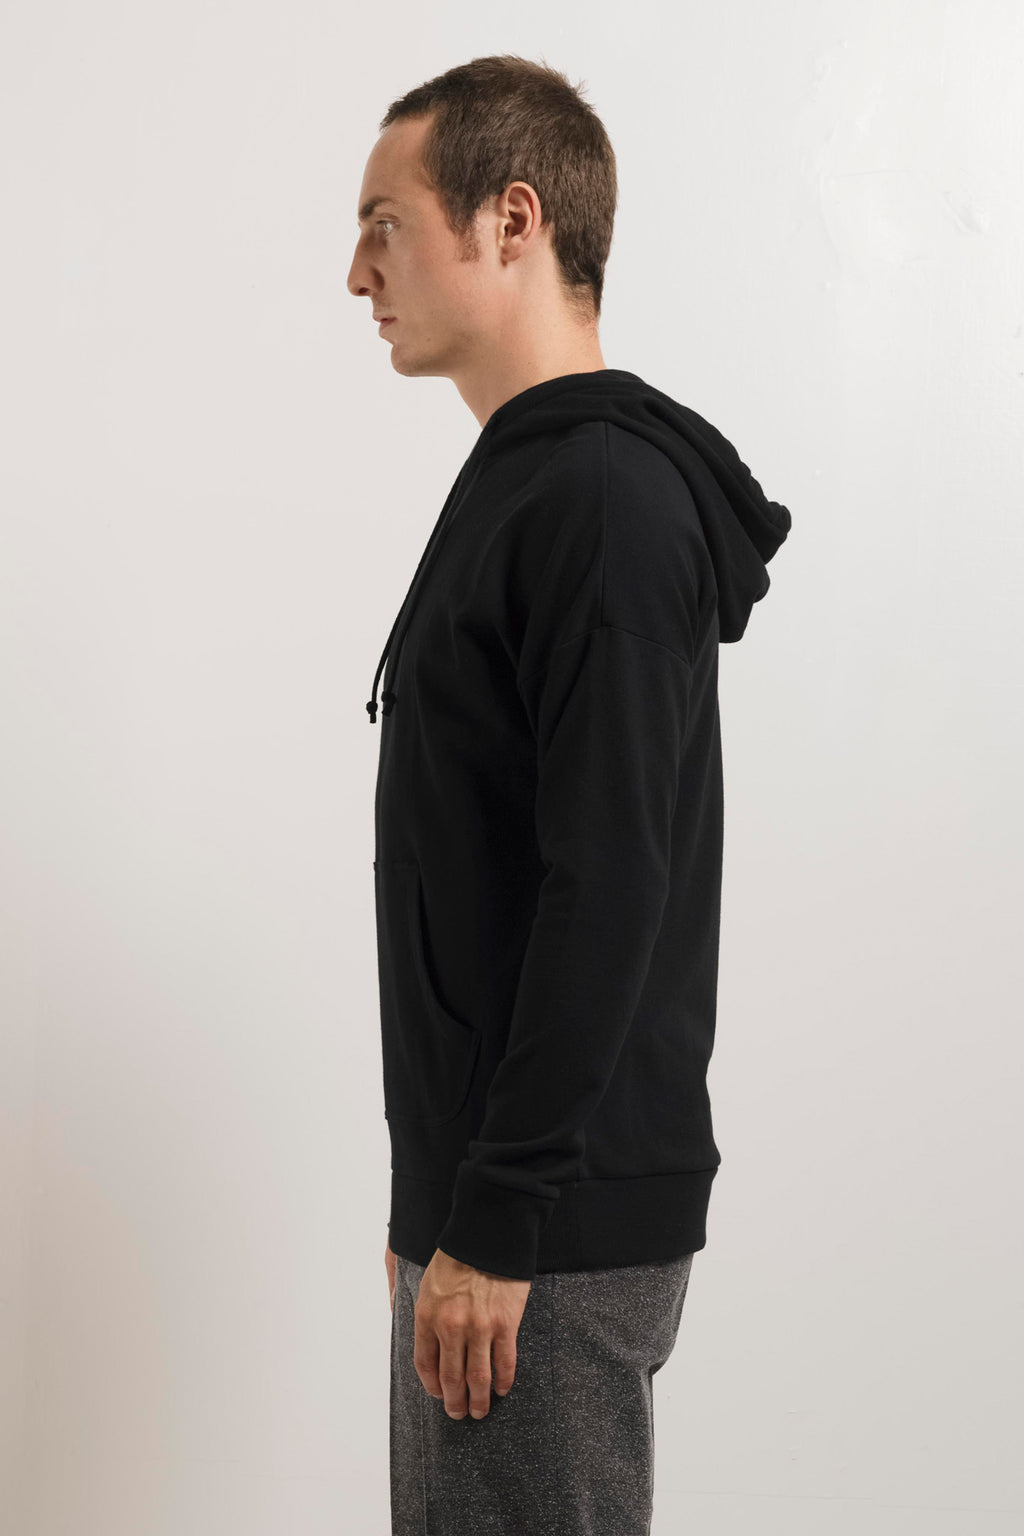 250g French Terry Pullover Hoodie in Black